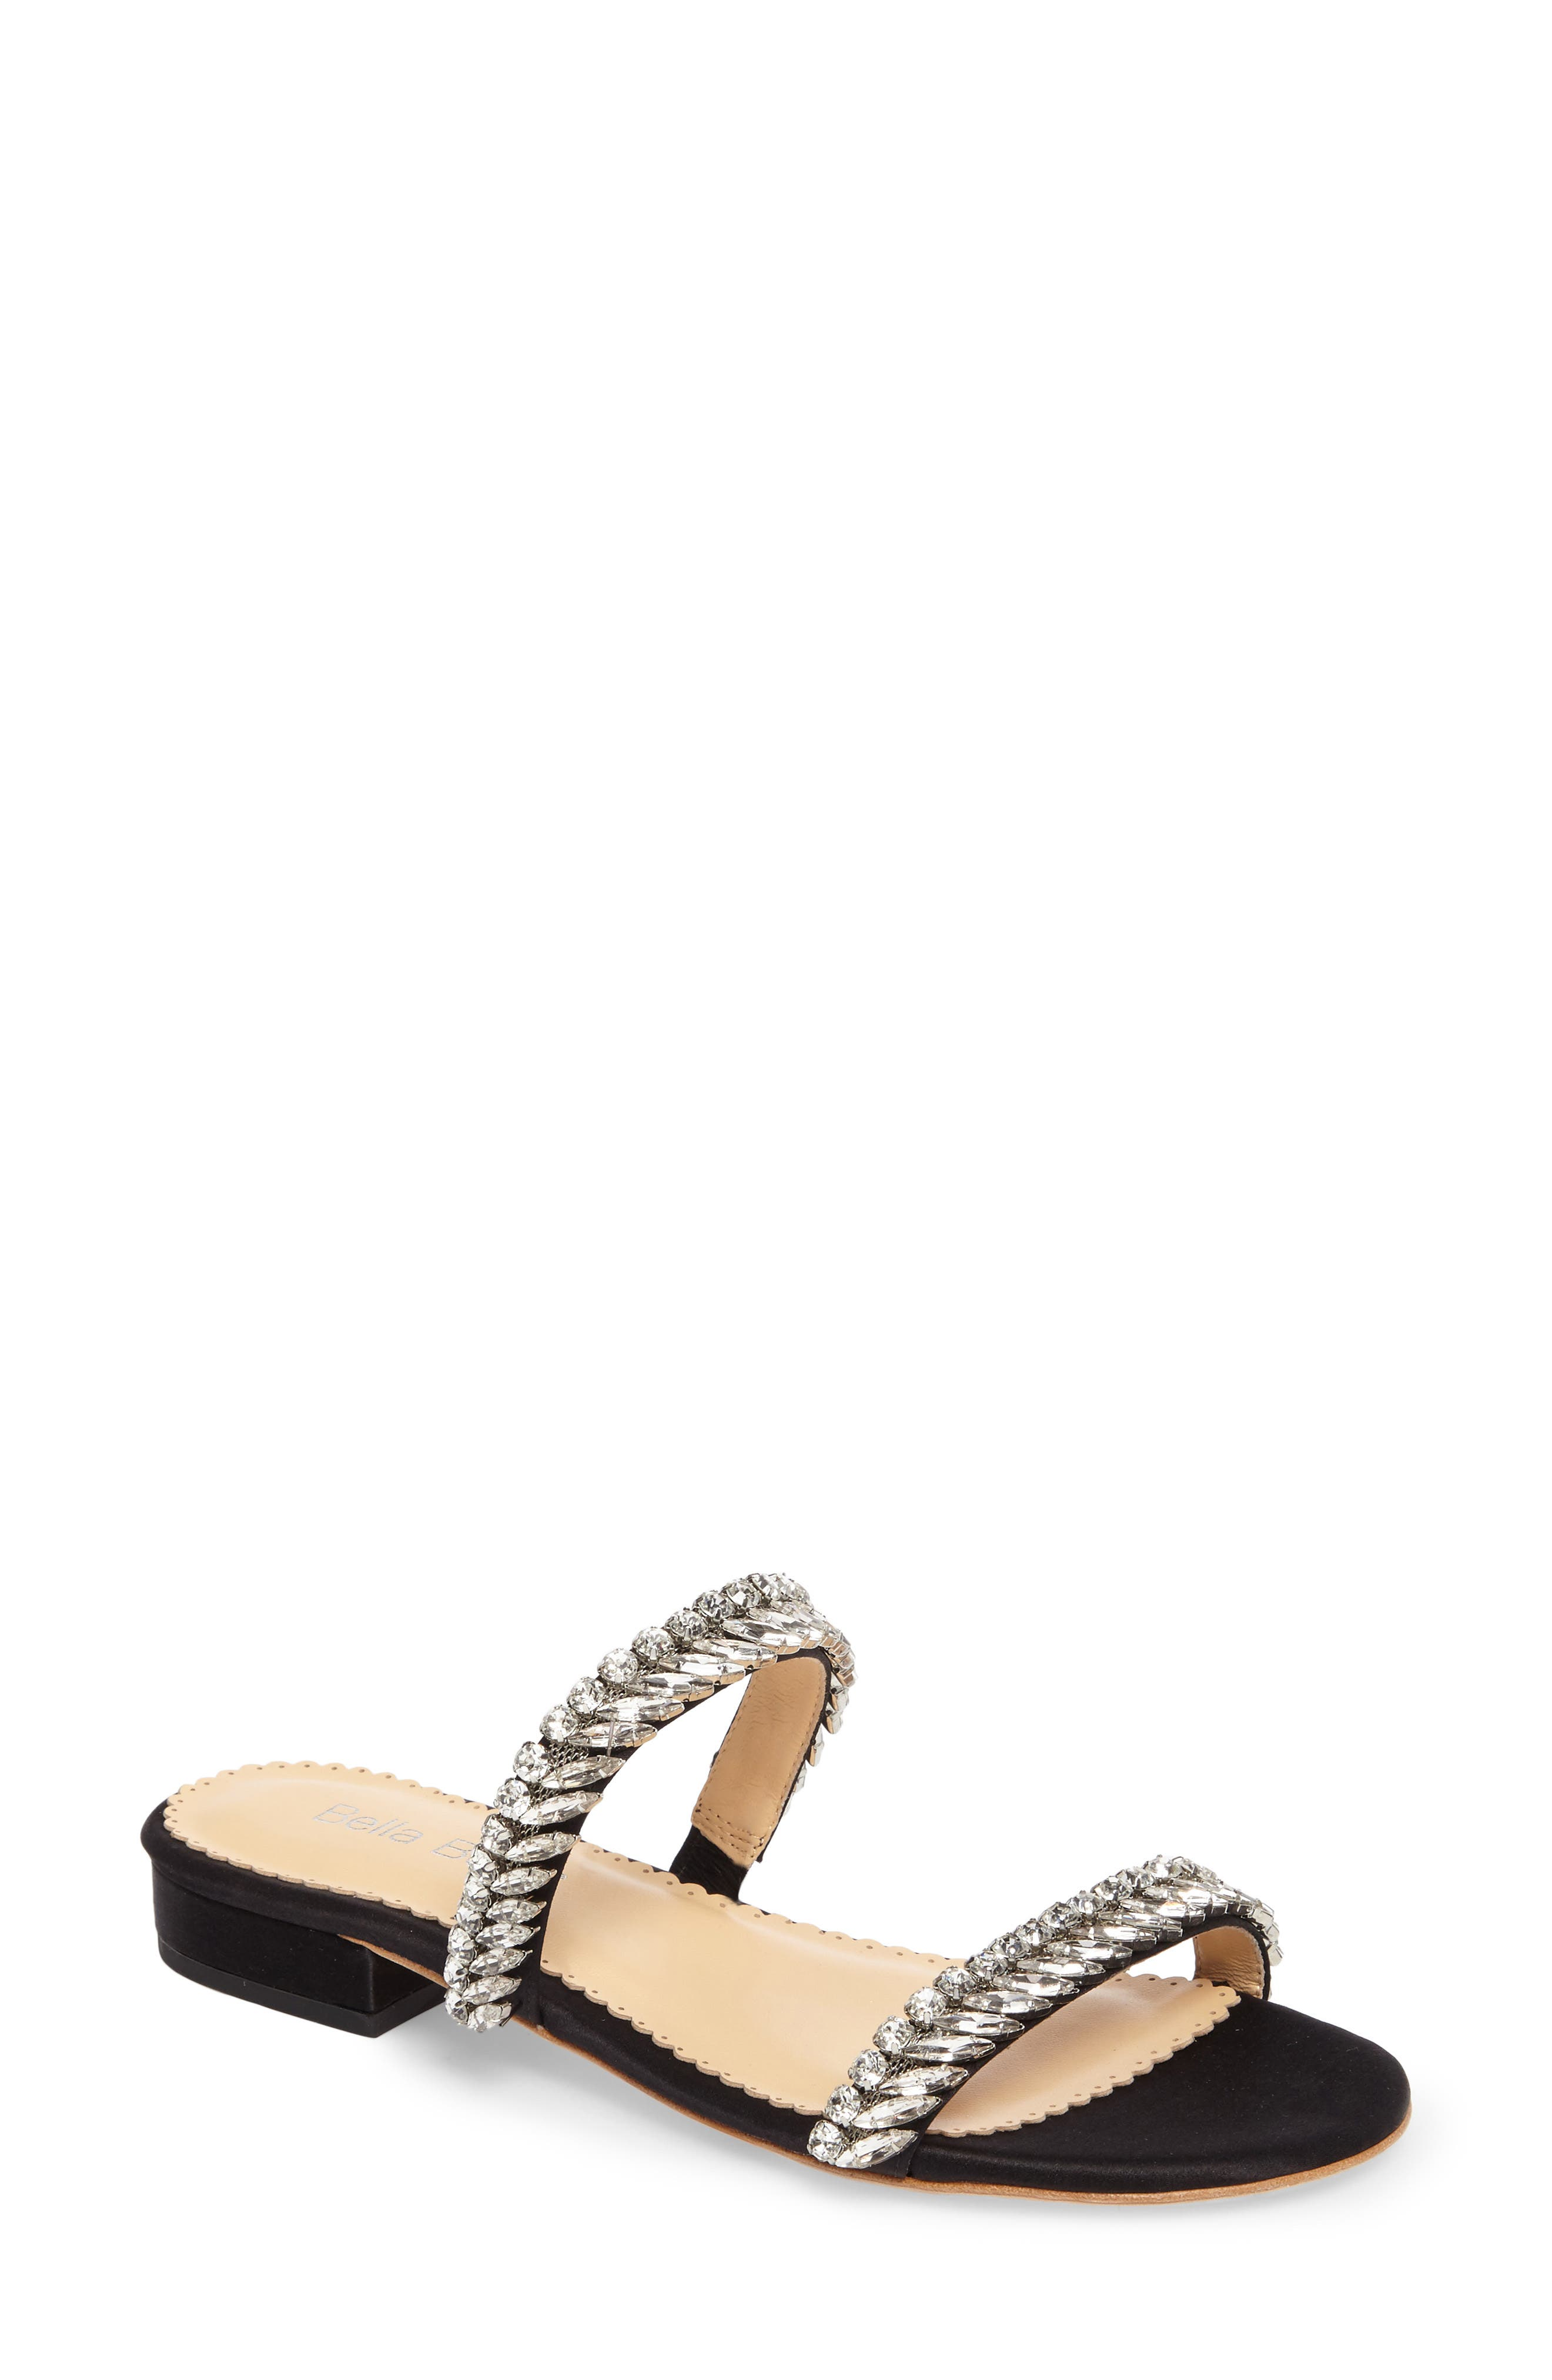 Bree Jeweled Evening Sandal,                         Main,                         color, Black